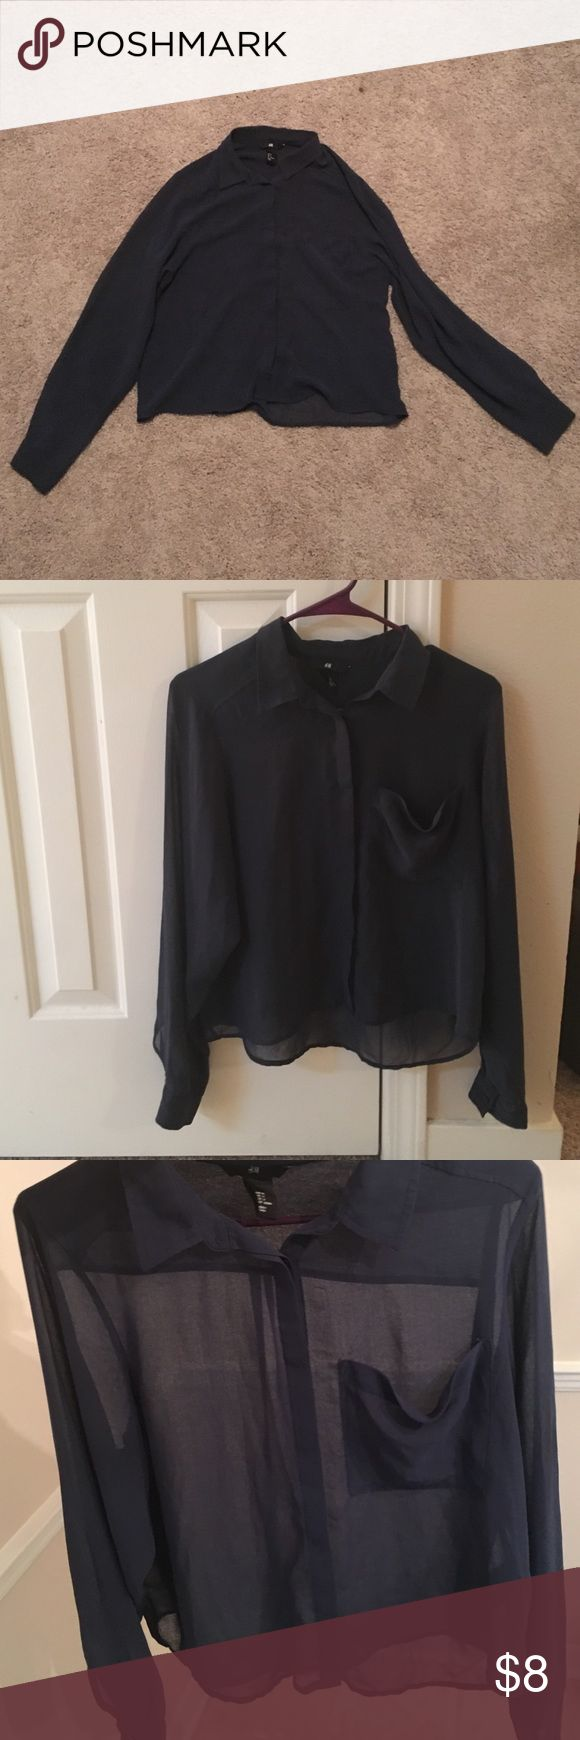 Navy blue blouse Sheer, navy blue, collared button down blouse that is shorter in the front than the back. Only worn once and great for multiple outfit options! H&M Tops Blouses